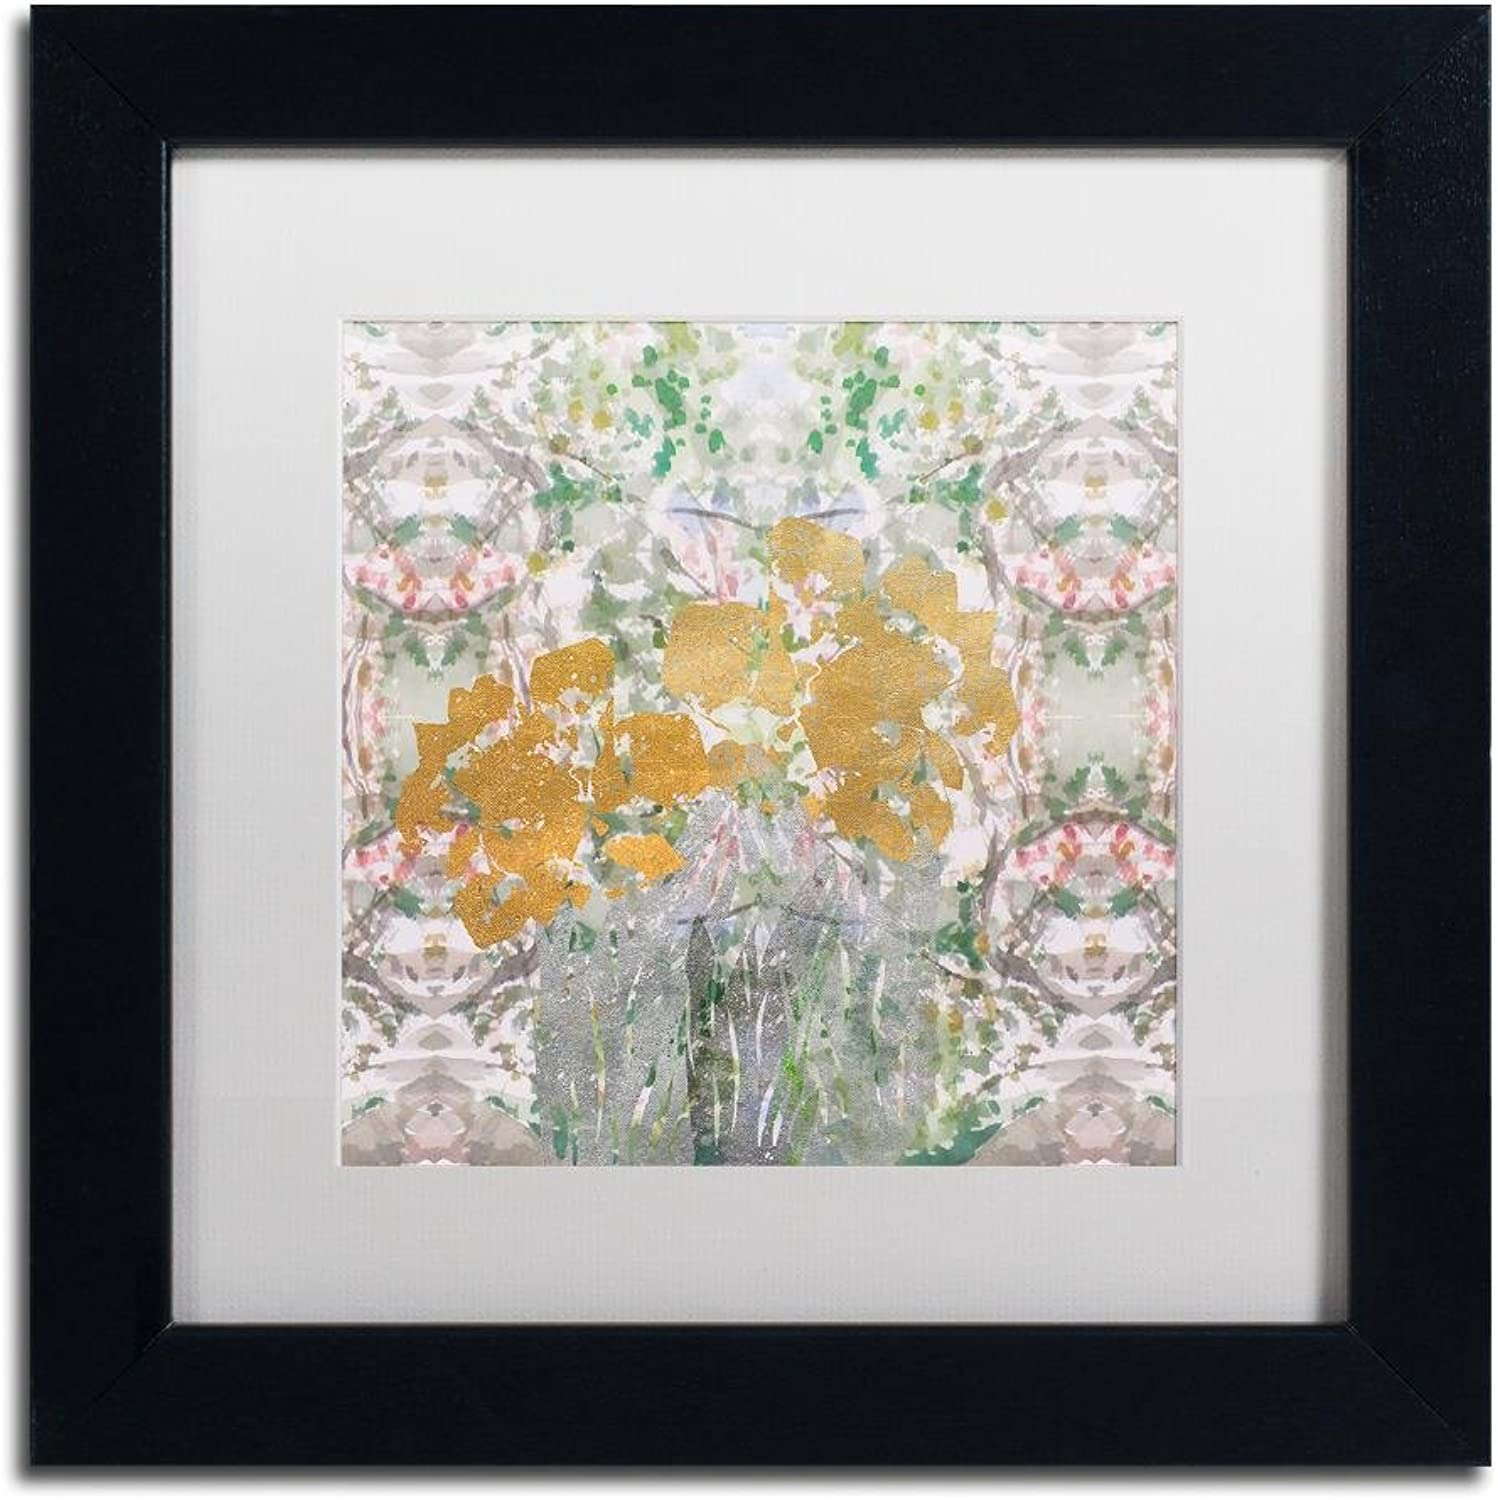 Trademark Fine Art Floral Abstract by Lisa Powell brown Wall Art, White Matte, Black Frame 11x11